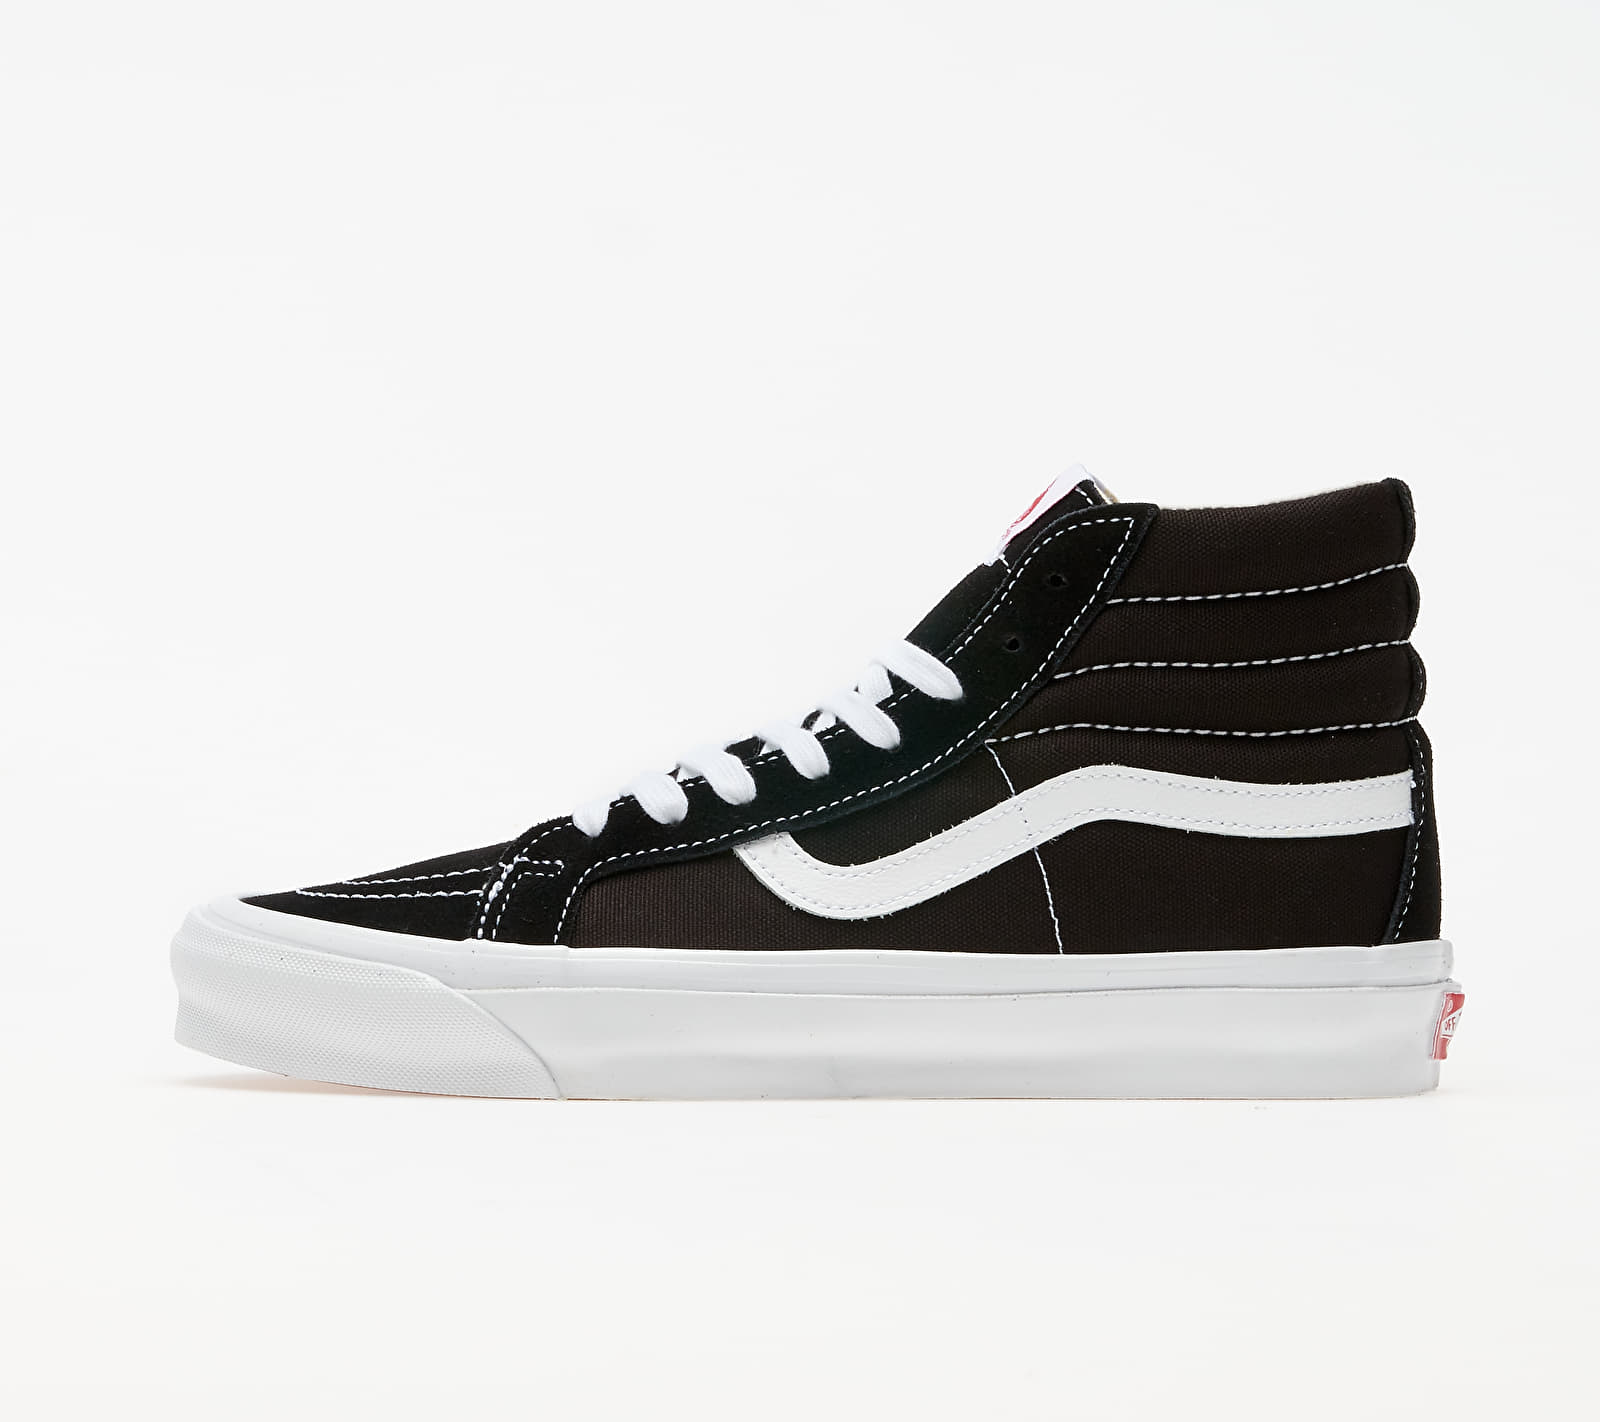 Vans Vault OG Sk8-Hi LX (Suede/ Canvas) Black/ True White EUR 36.5